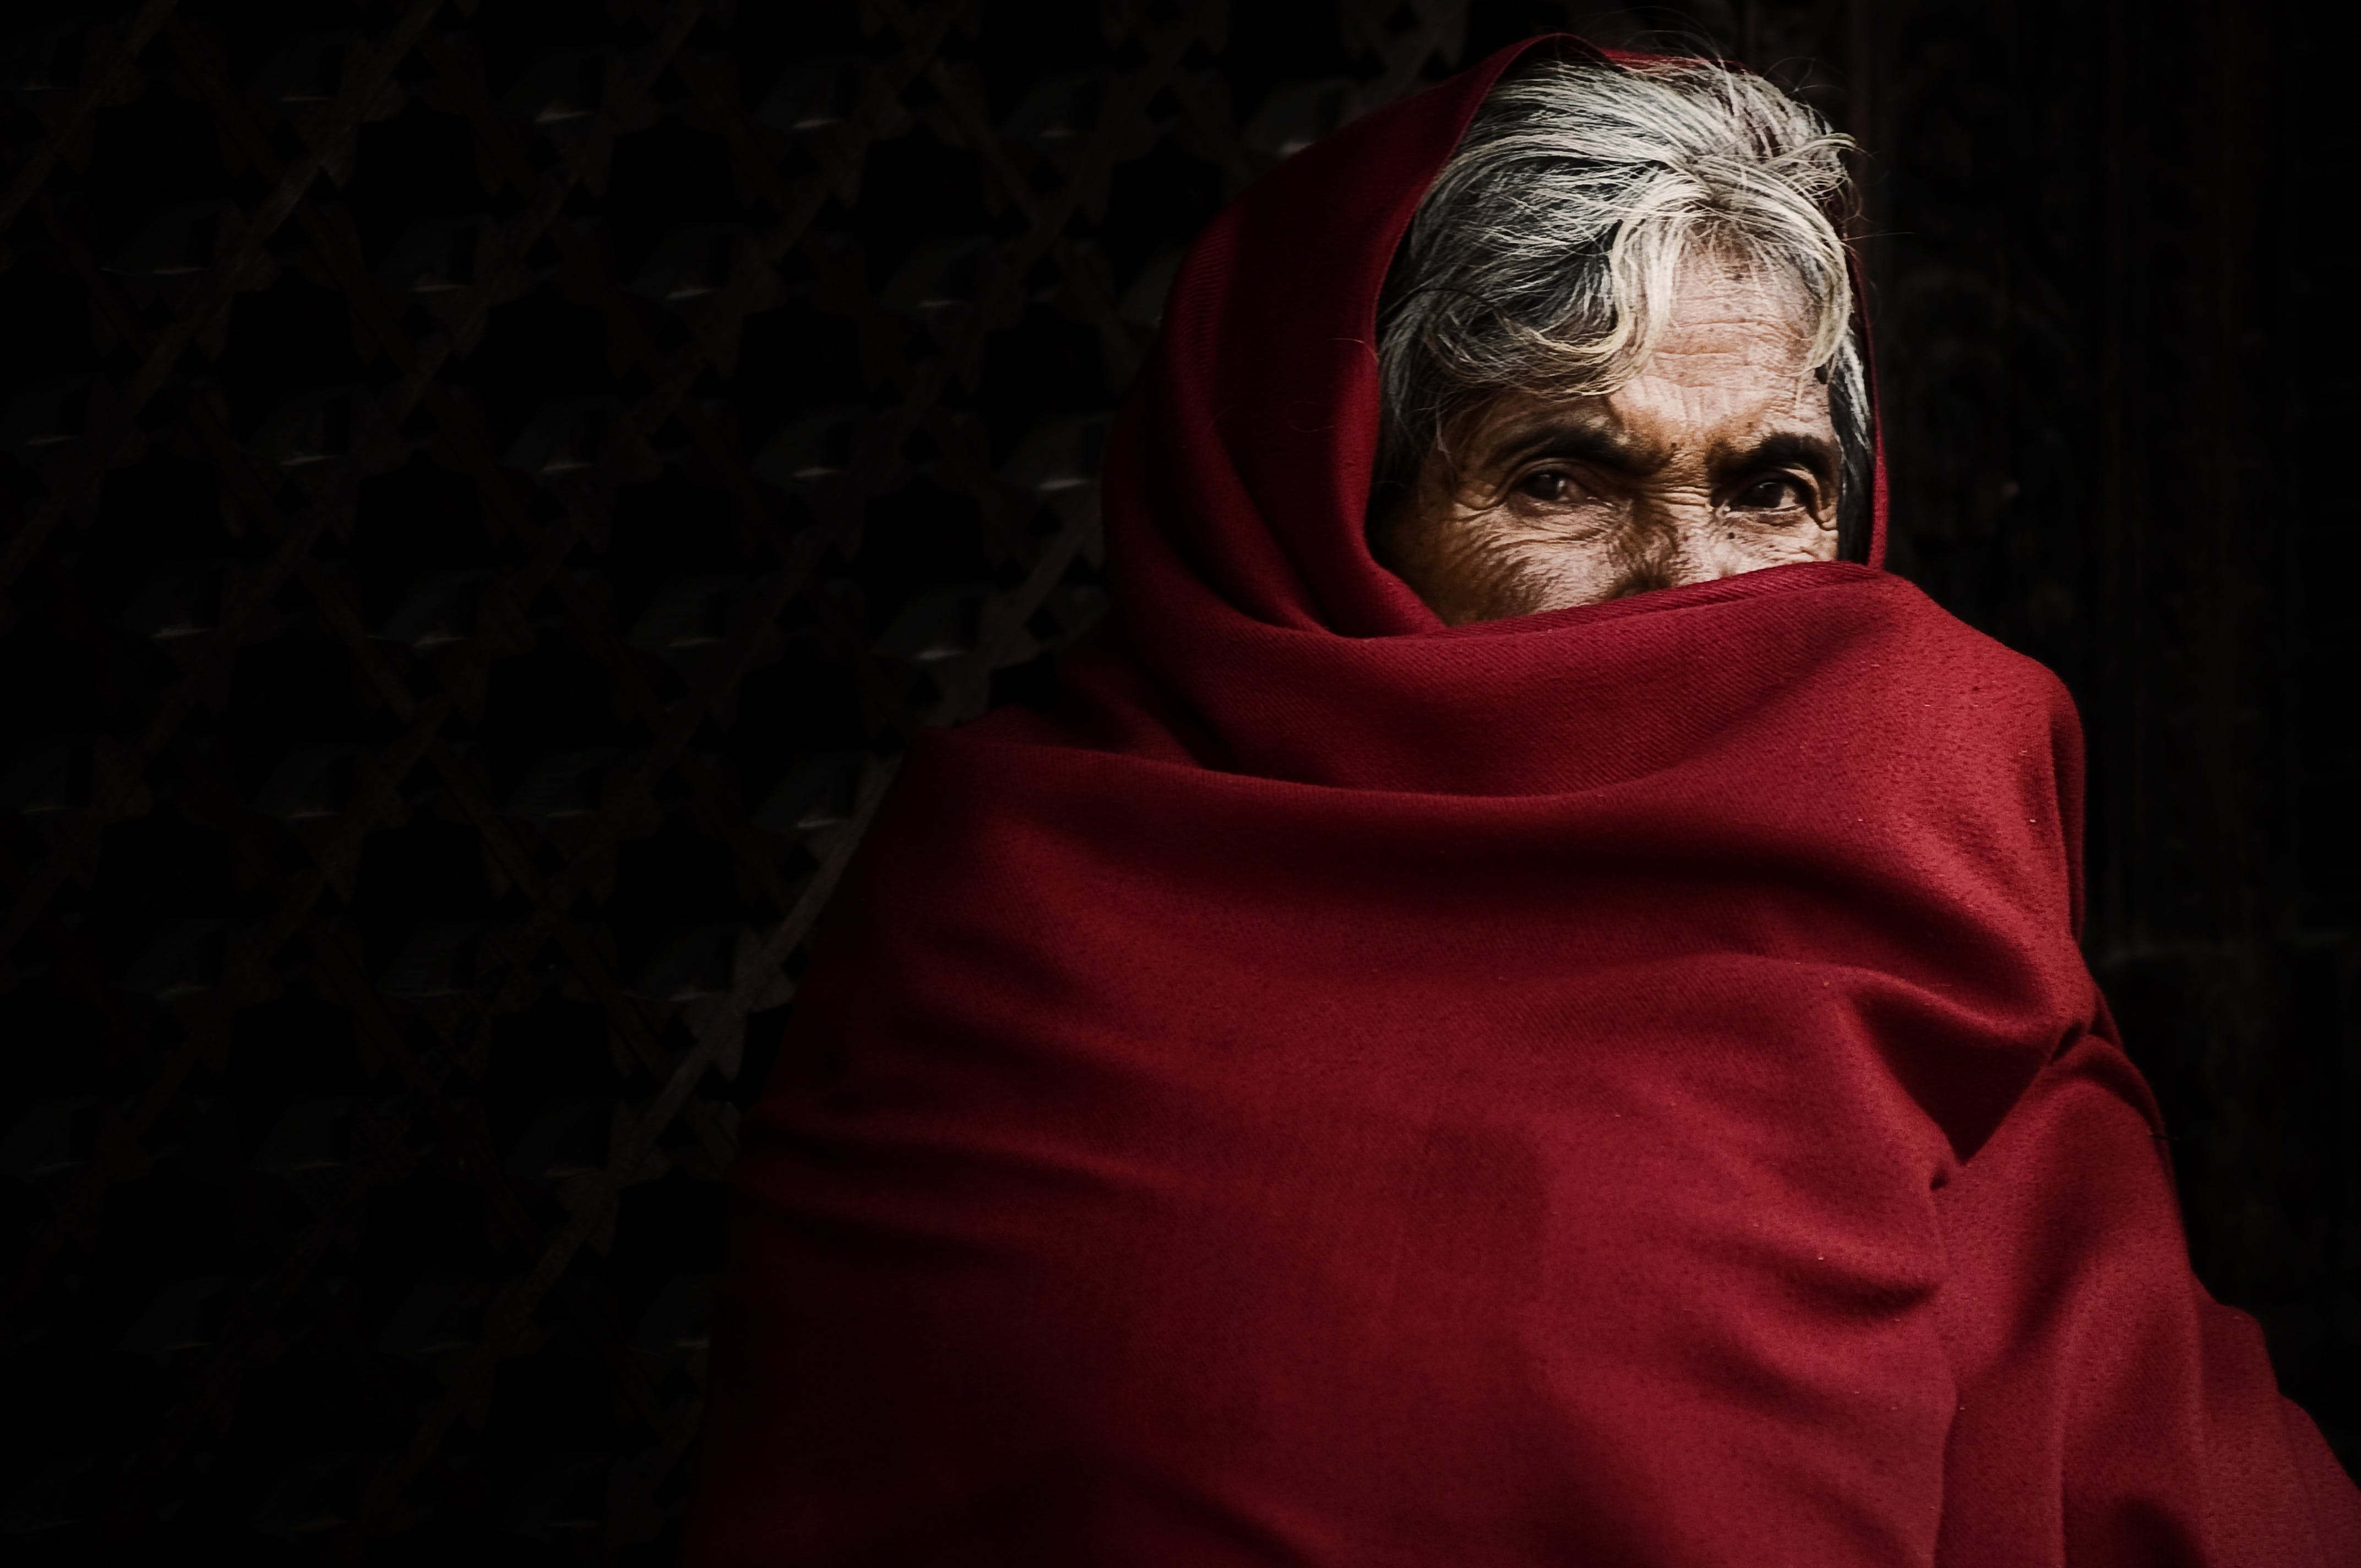 Person Covering His Face With Red Blanket